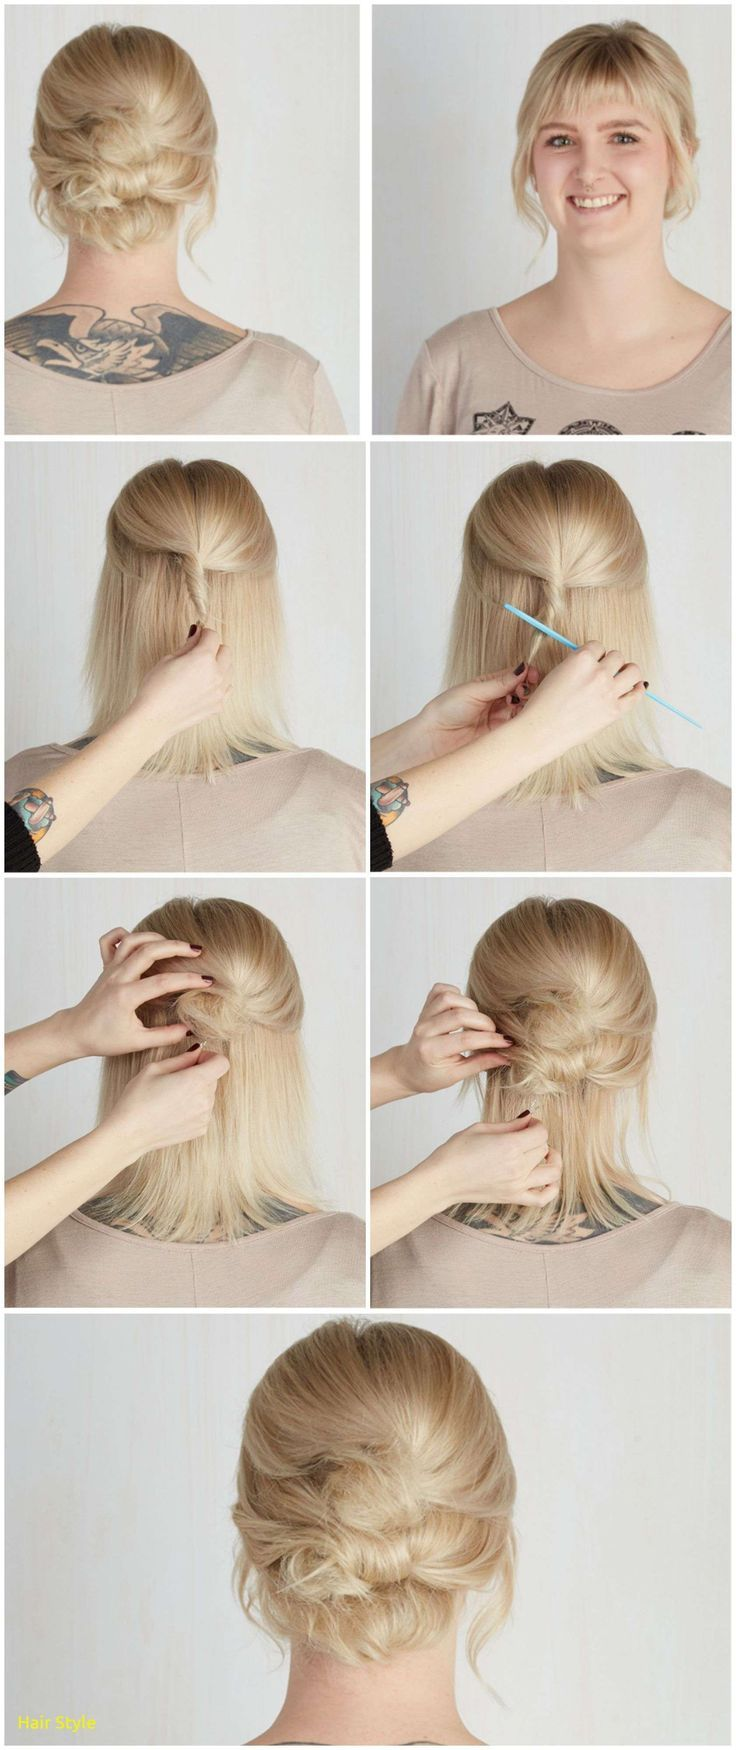 Nice simple hairstyles for a wedding